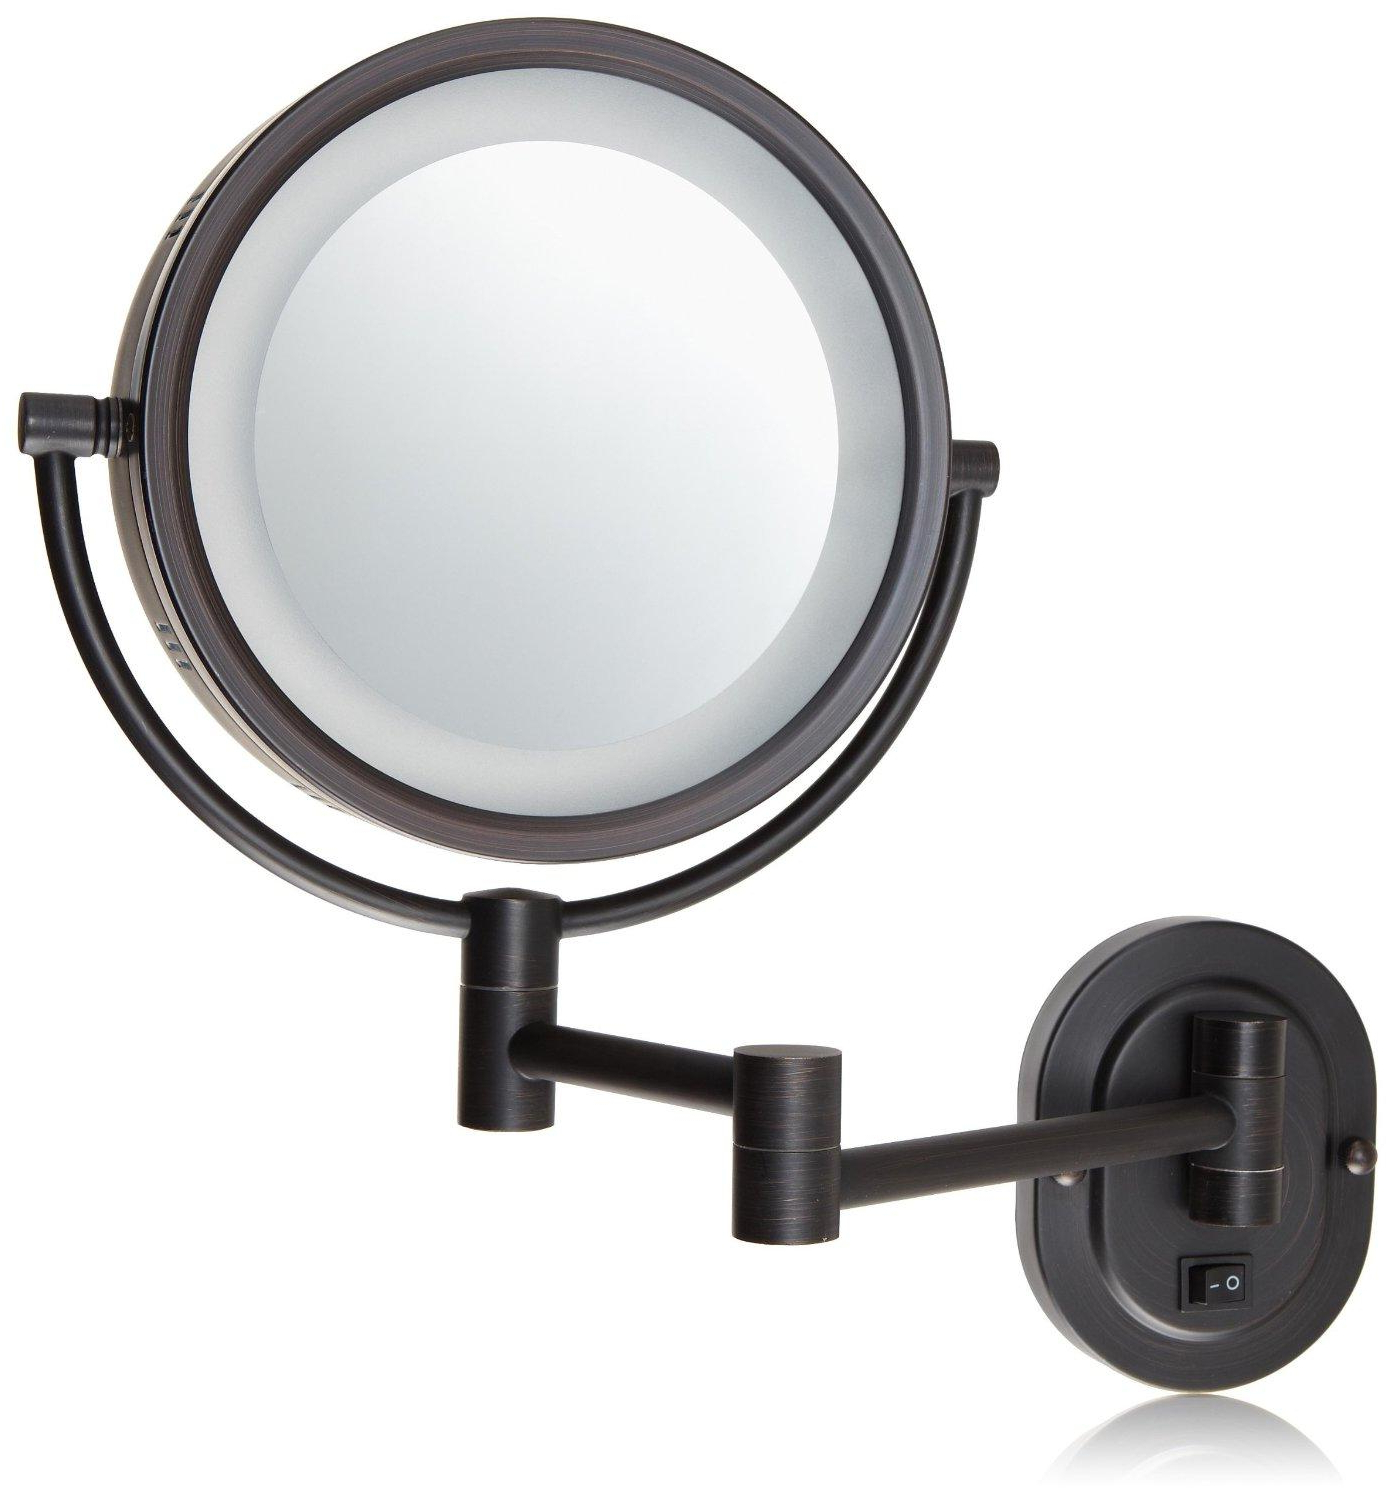 Well Known Jerdon Hl65bzd 8 Inch Lighted Direct Wire Wall Mount Makeup Mirror With 5x Magnification, Bronze Finish With Regard To Make Up Wall Mirrors (View 3 of 20)